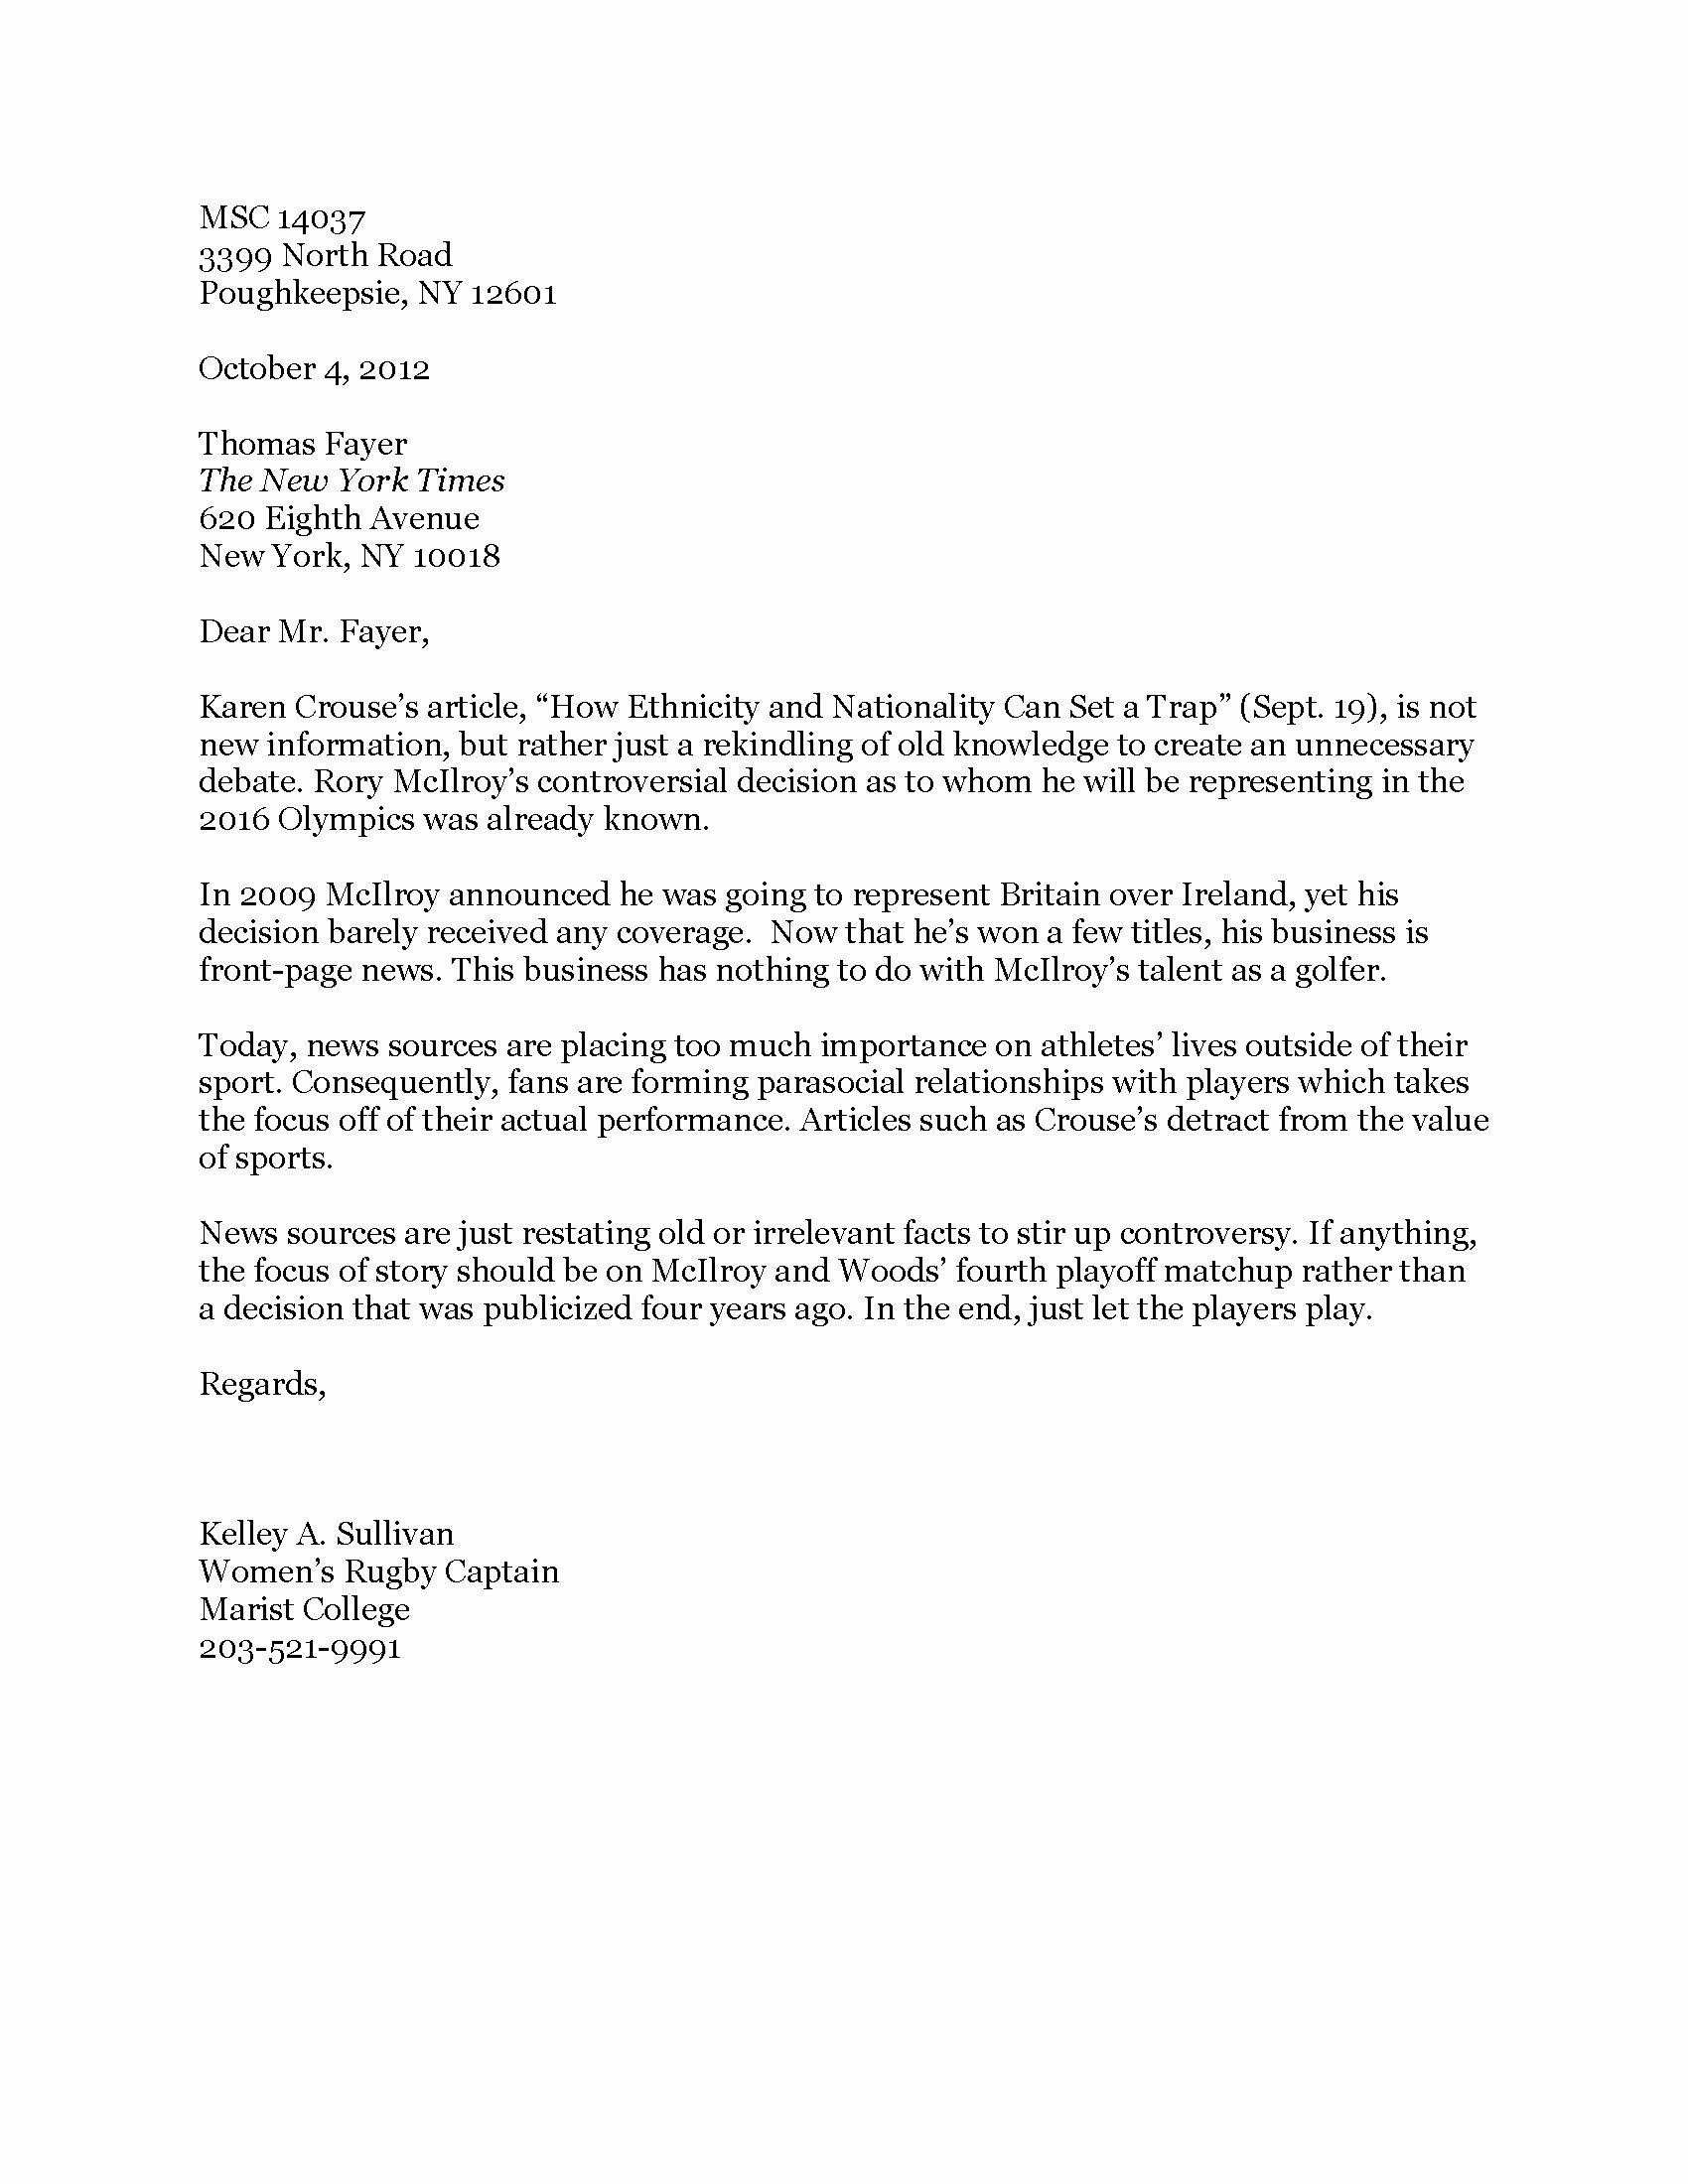 Letter to Editors format Beautiful Letter to the Editor